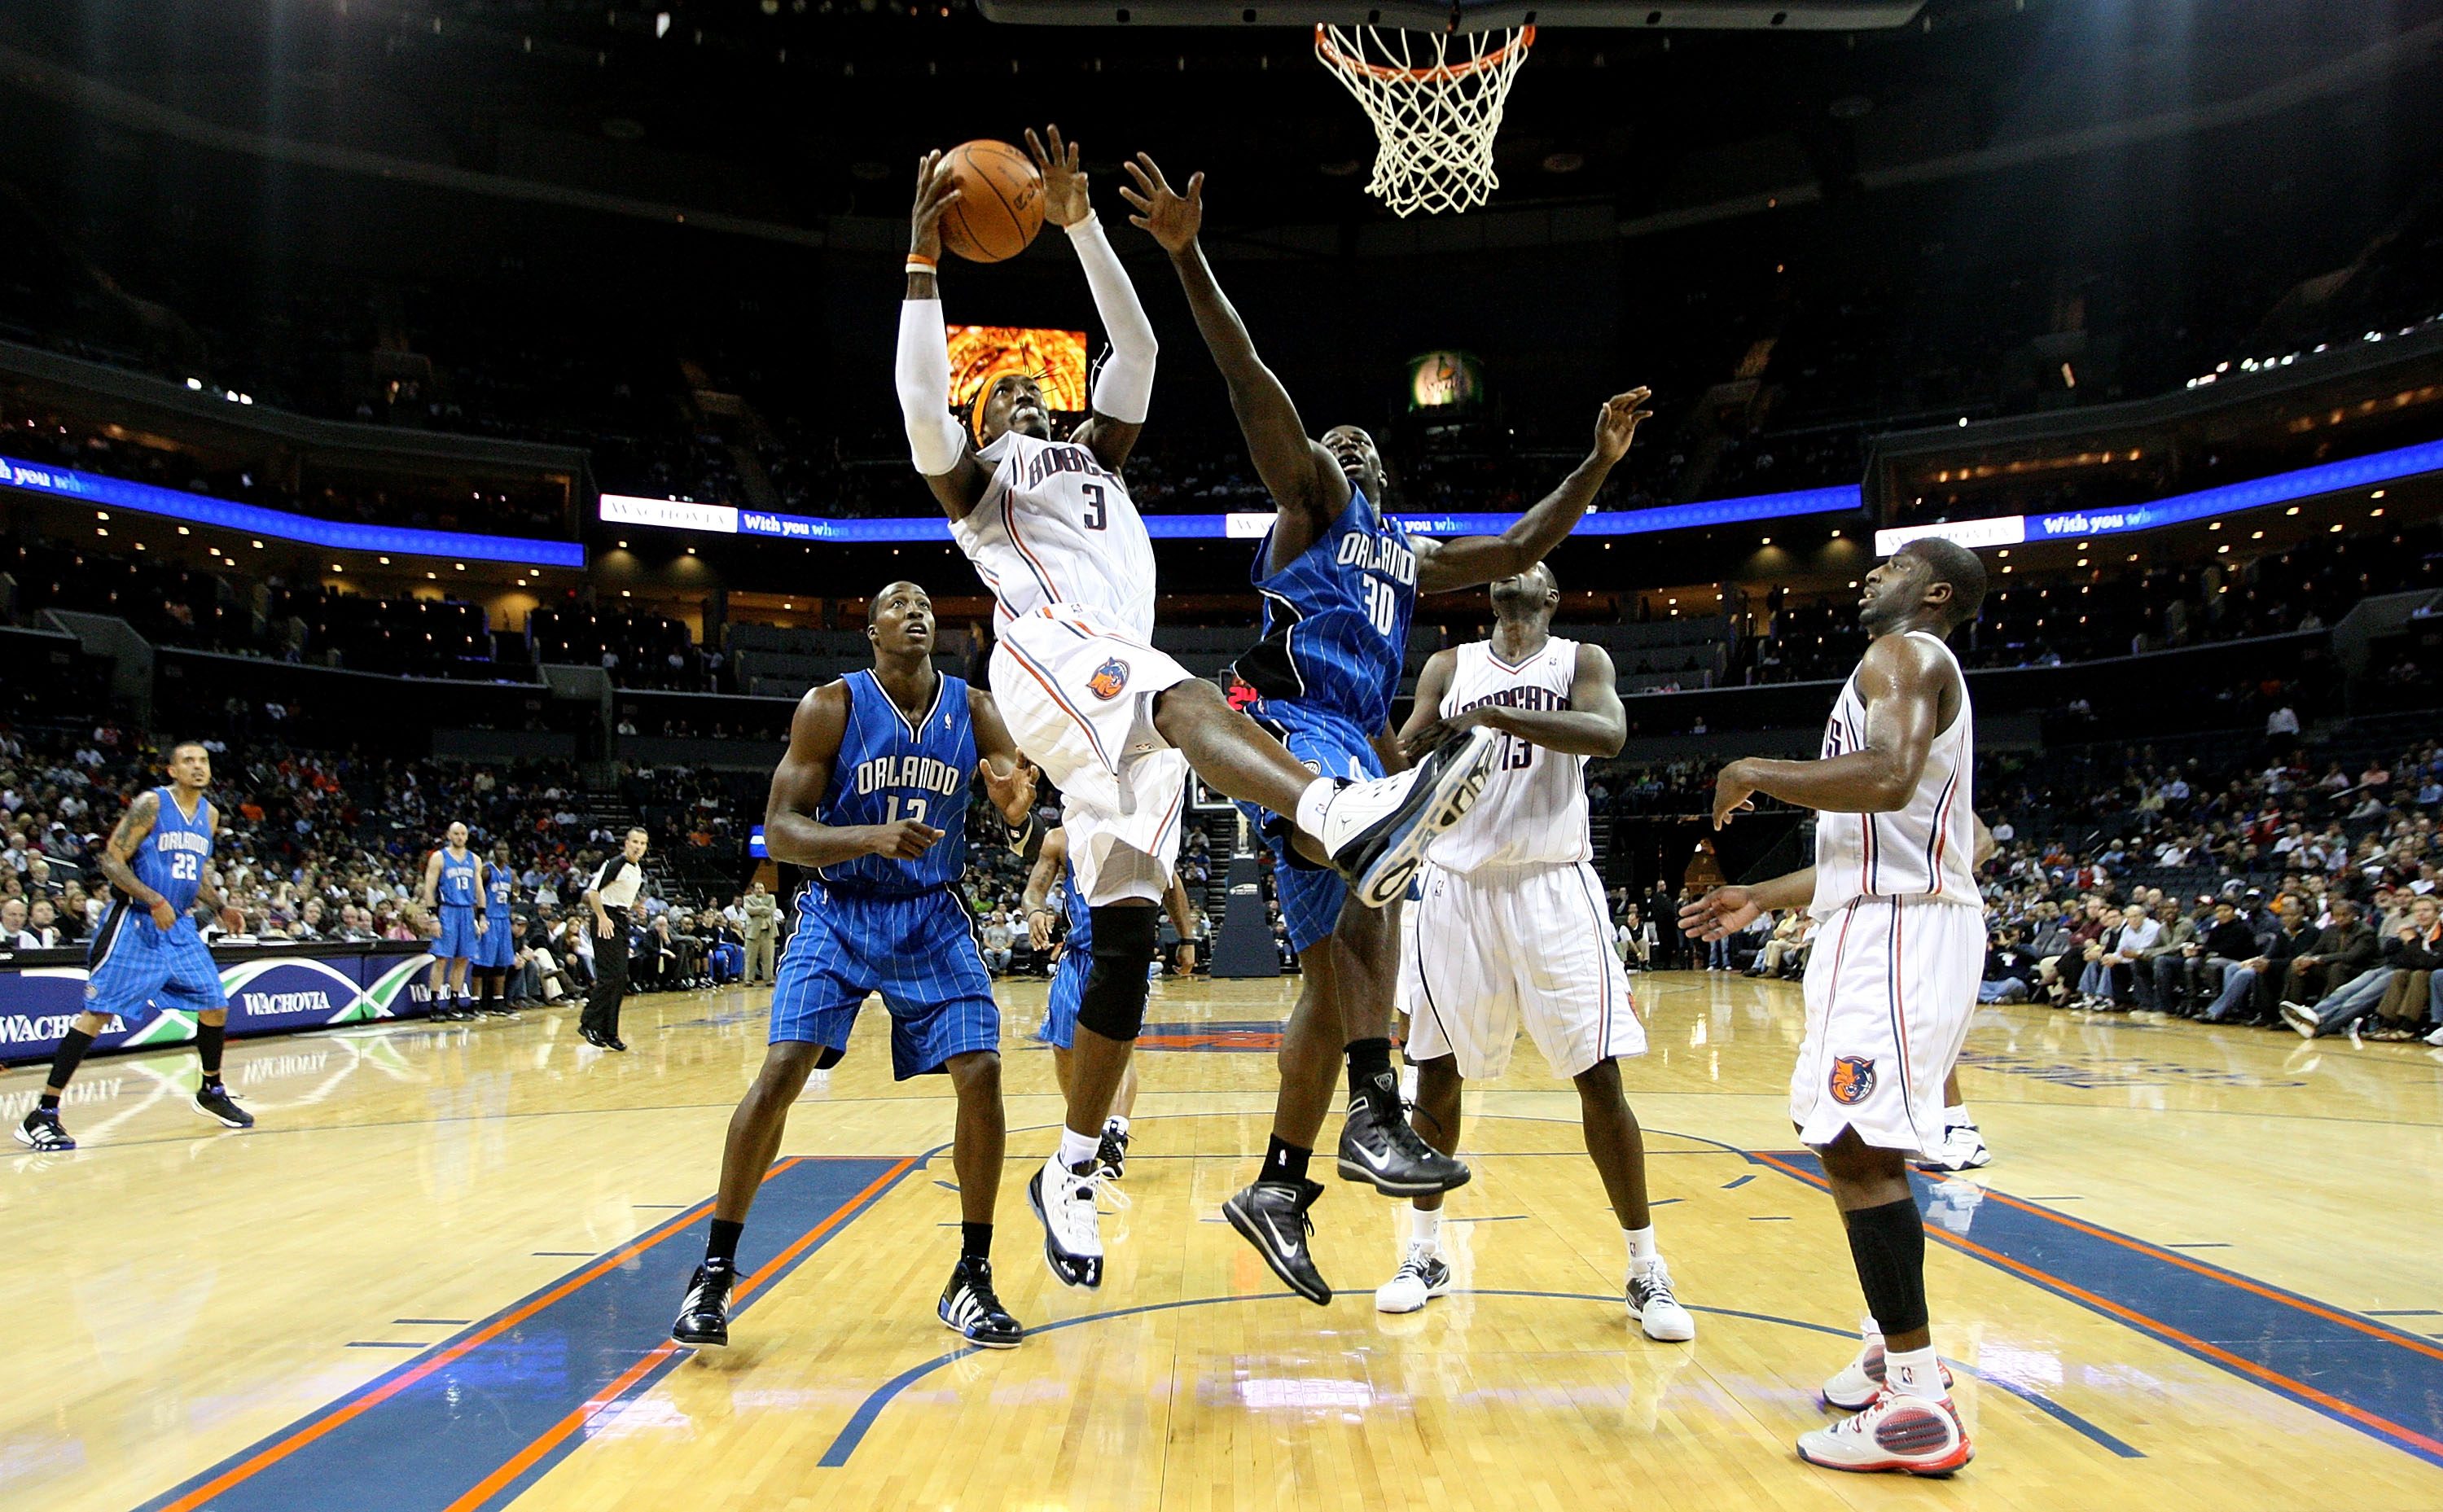 CHARLOTTE, NC - NOVEMBER 10:  Brandon Bass #30 of the Orlando Magic goes up for a rebound against Gerald Wallace #3 of the Charlotte Bobcats in NBA action at Time Warner Cable Arena on November 10, 2009 in Charlotte, North Carolina. NOTE TO USER: User exp